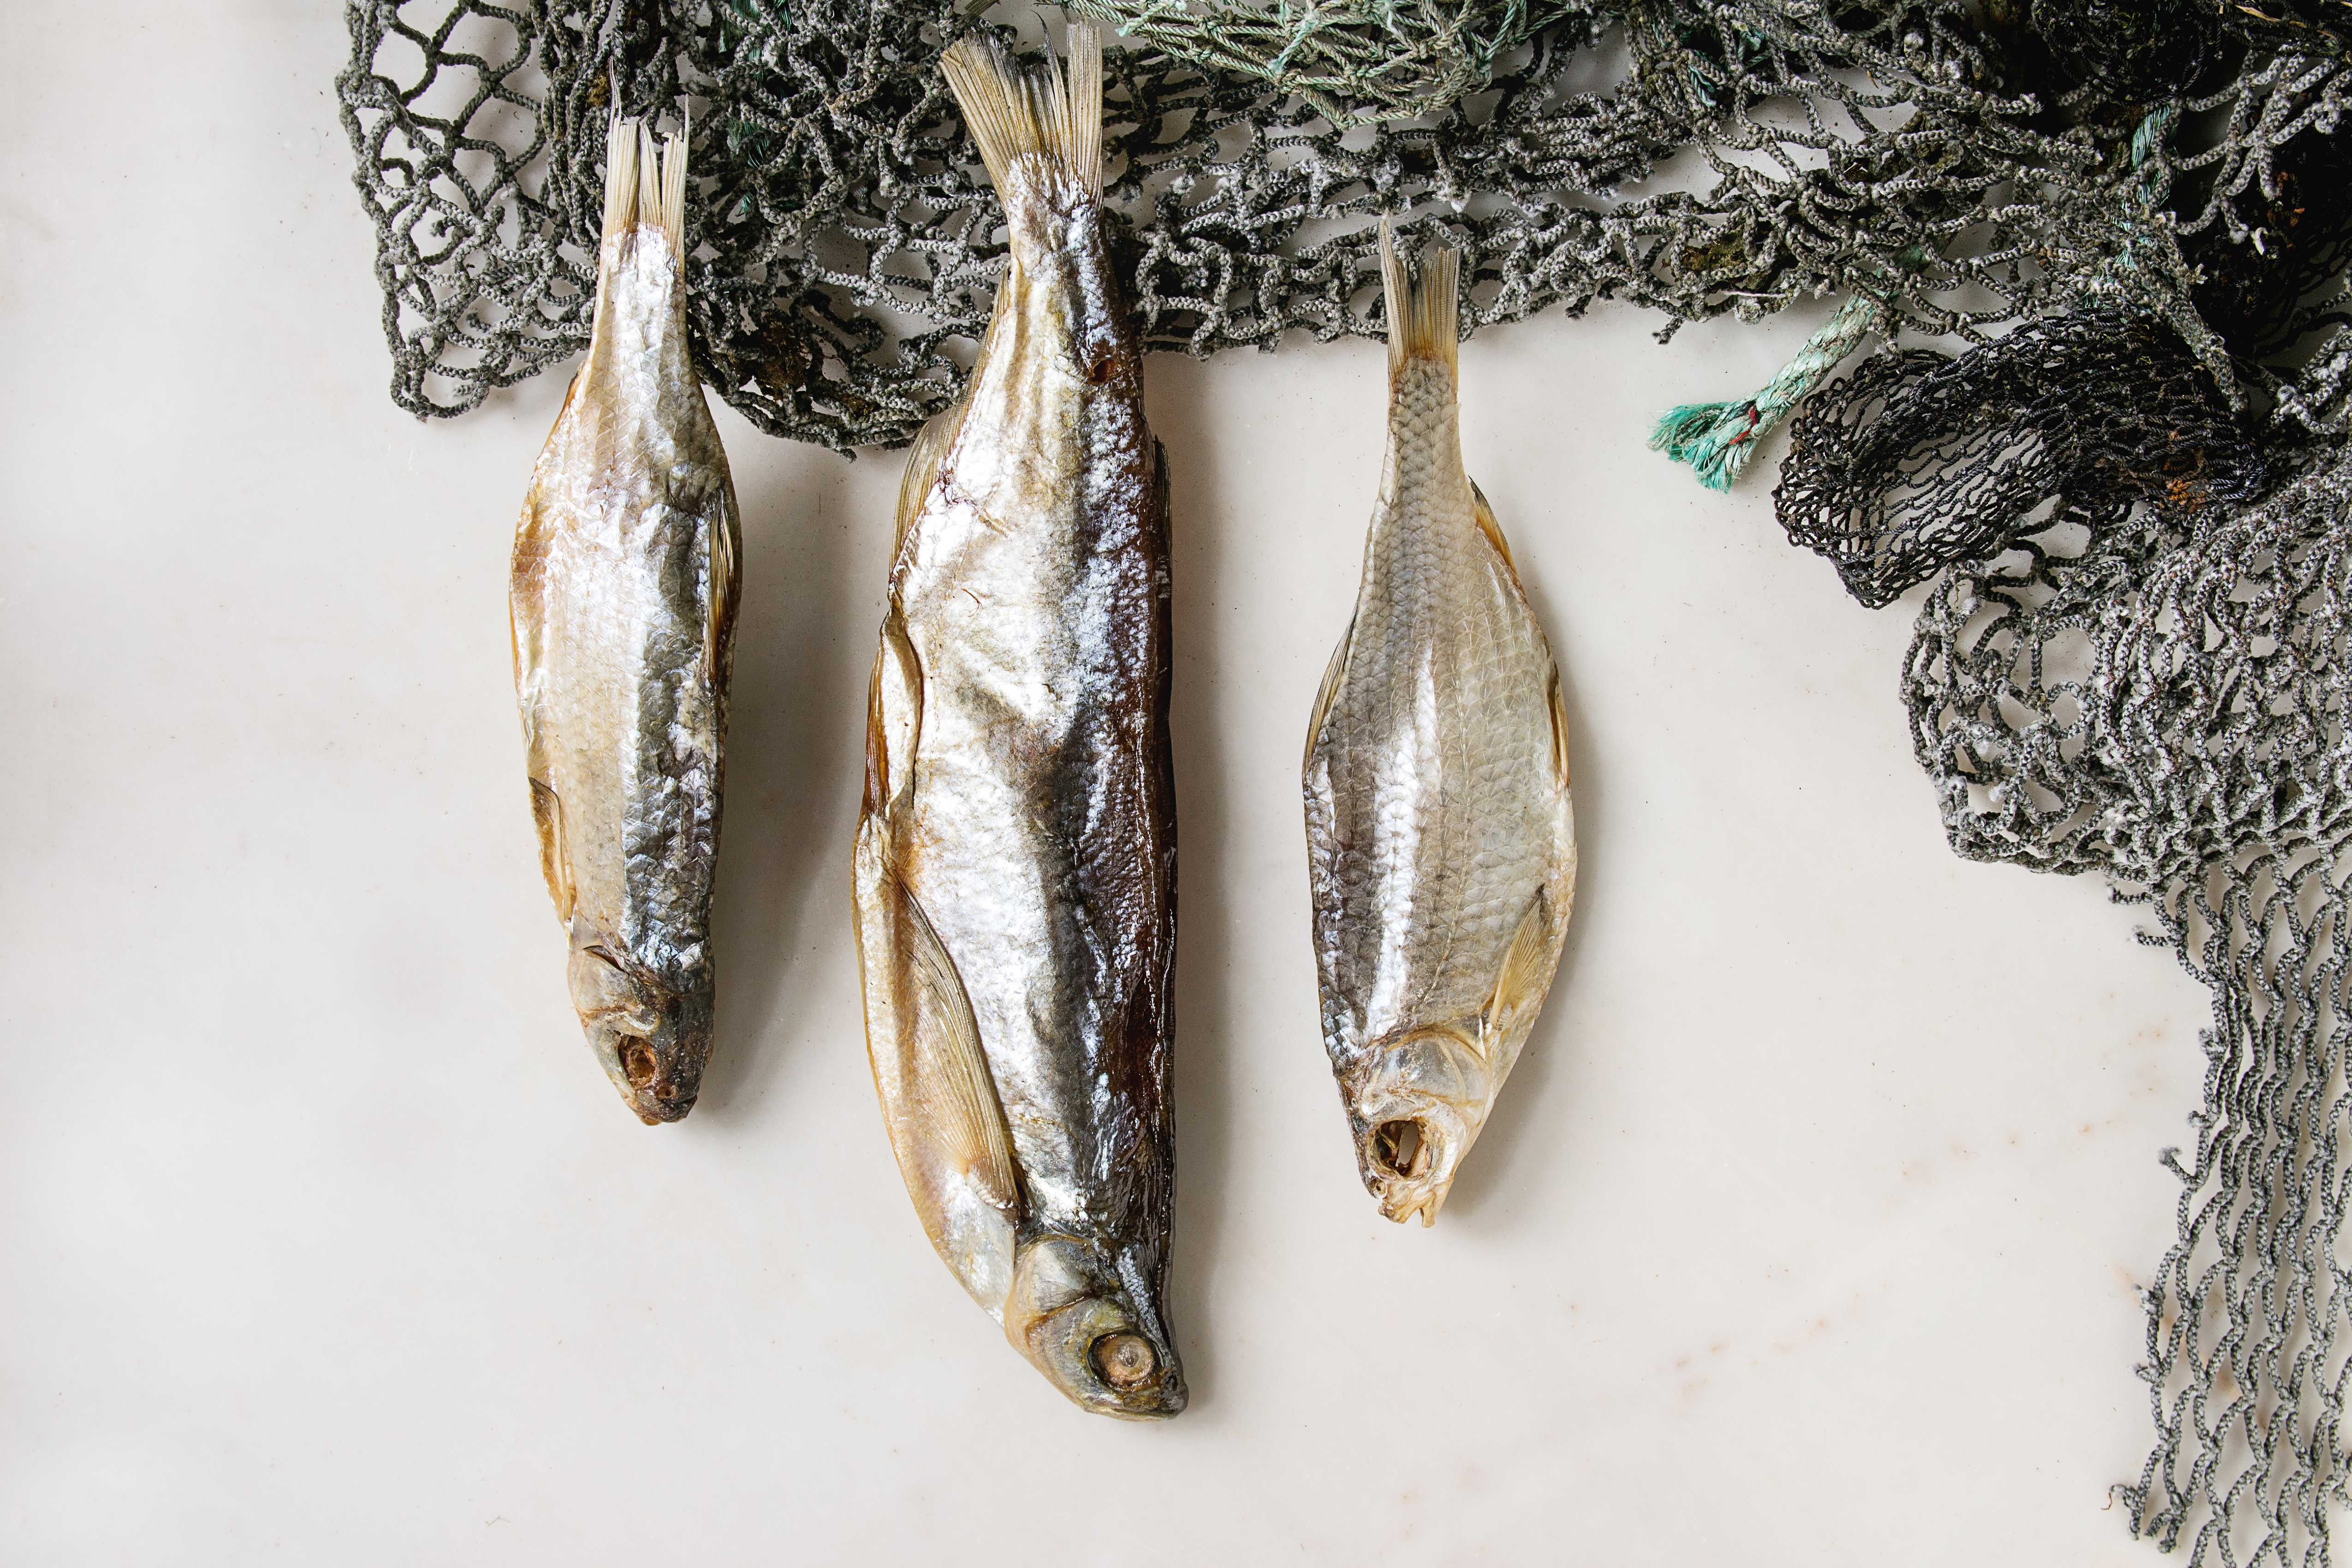 Dried fish or stockfish on fishing nets over white marble background. Flat lay. space